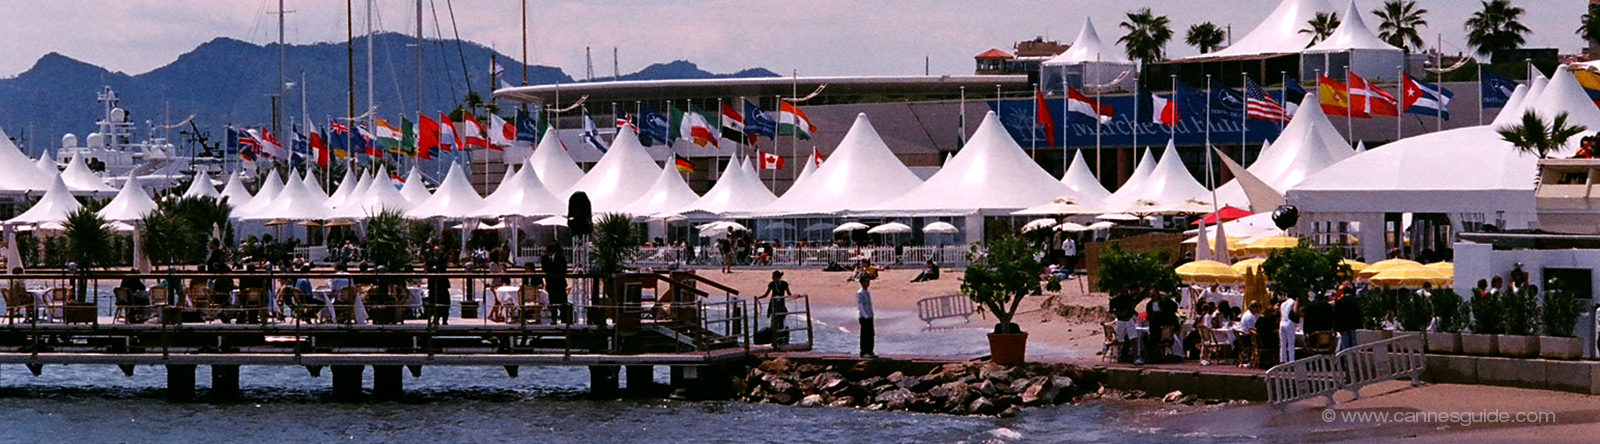 Village International, Cannes